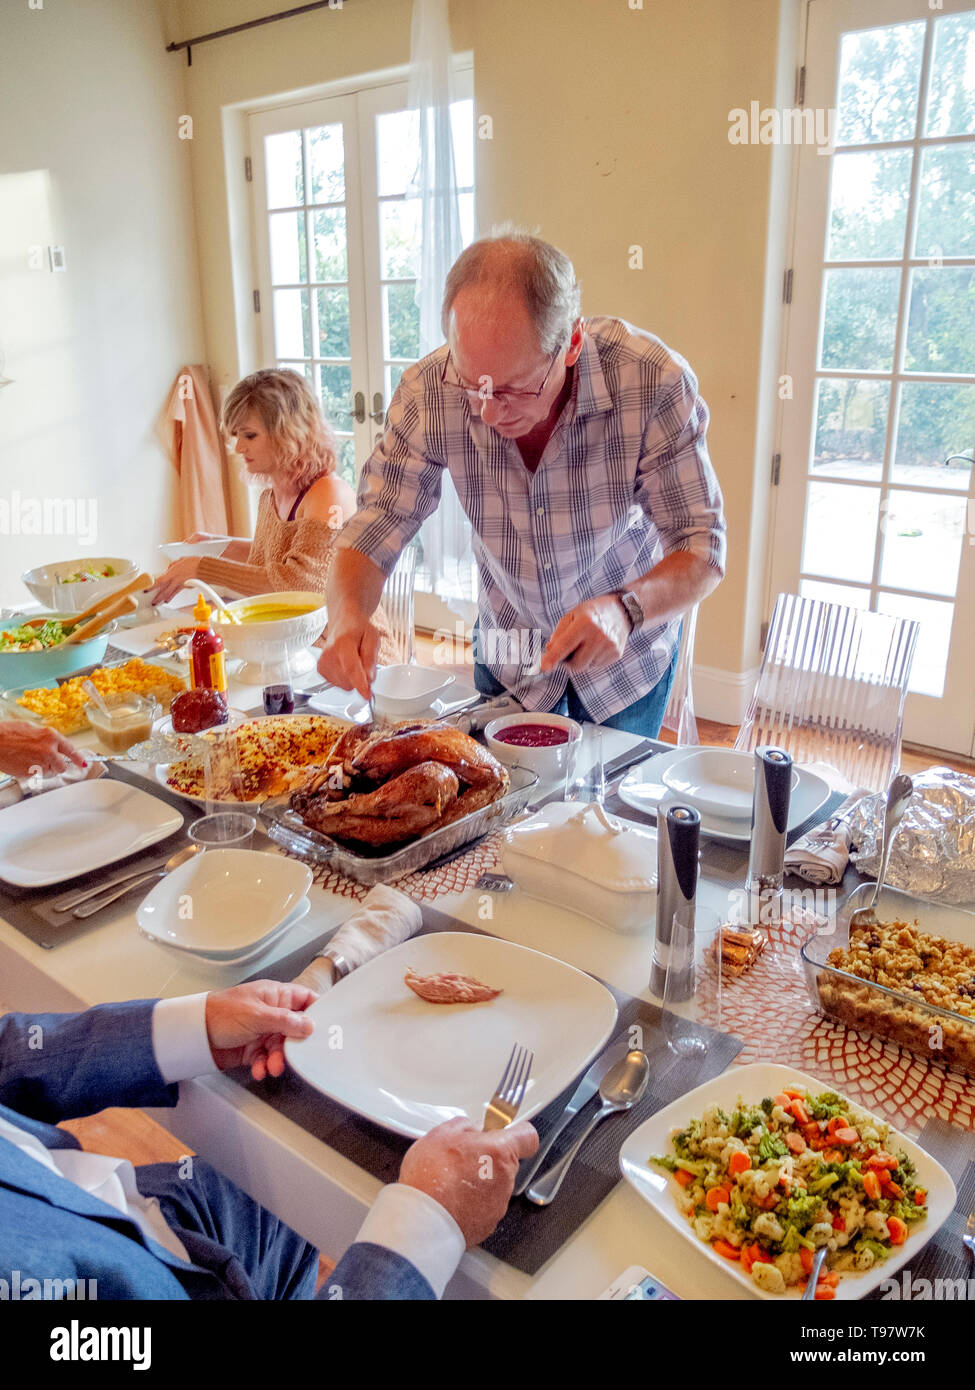 Accompanied by his daughter, a Caucasian senior man carves a Thanksgiving turkey during a holiday meal at home in San Juan Capistrano, CA. - Stock Image